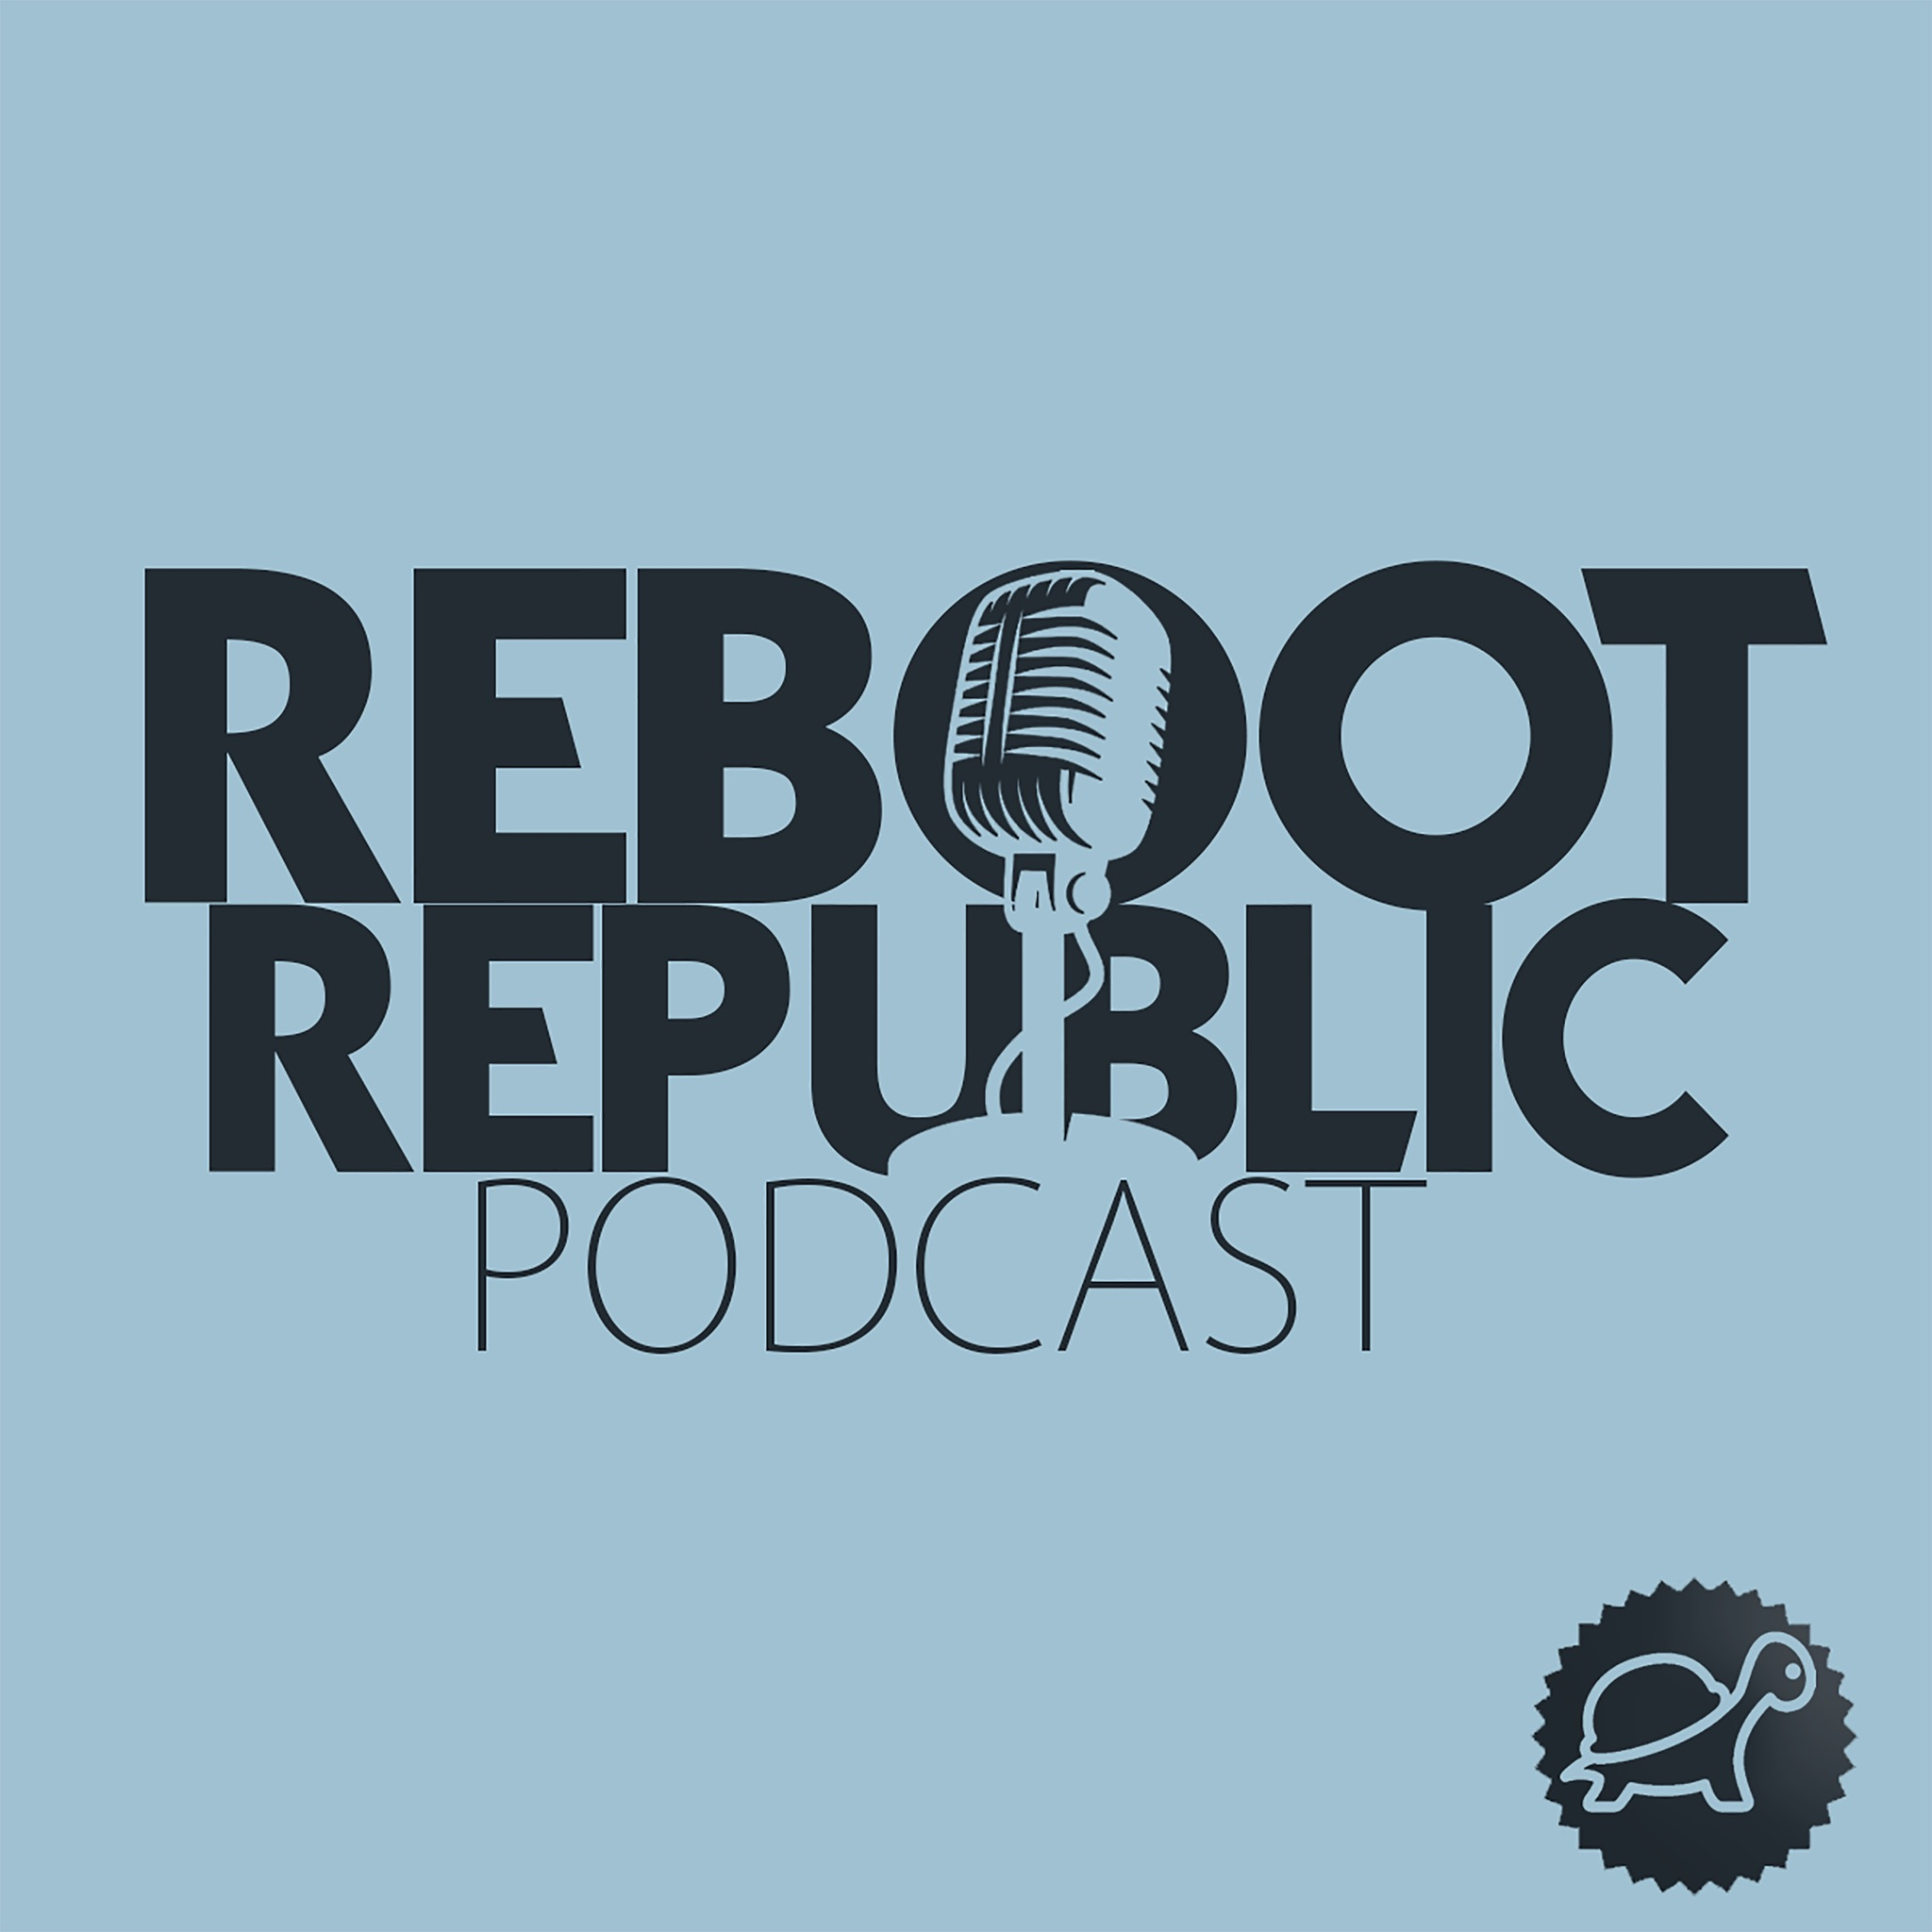 Reboot Republic Podcast